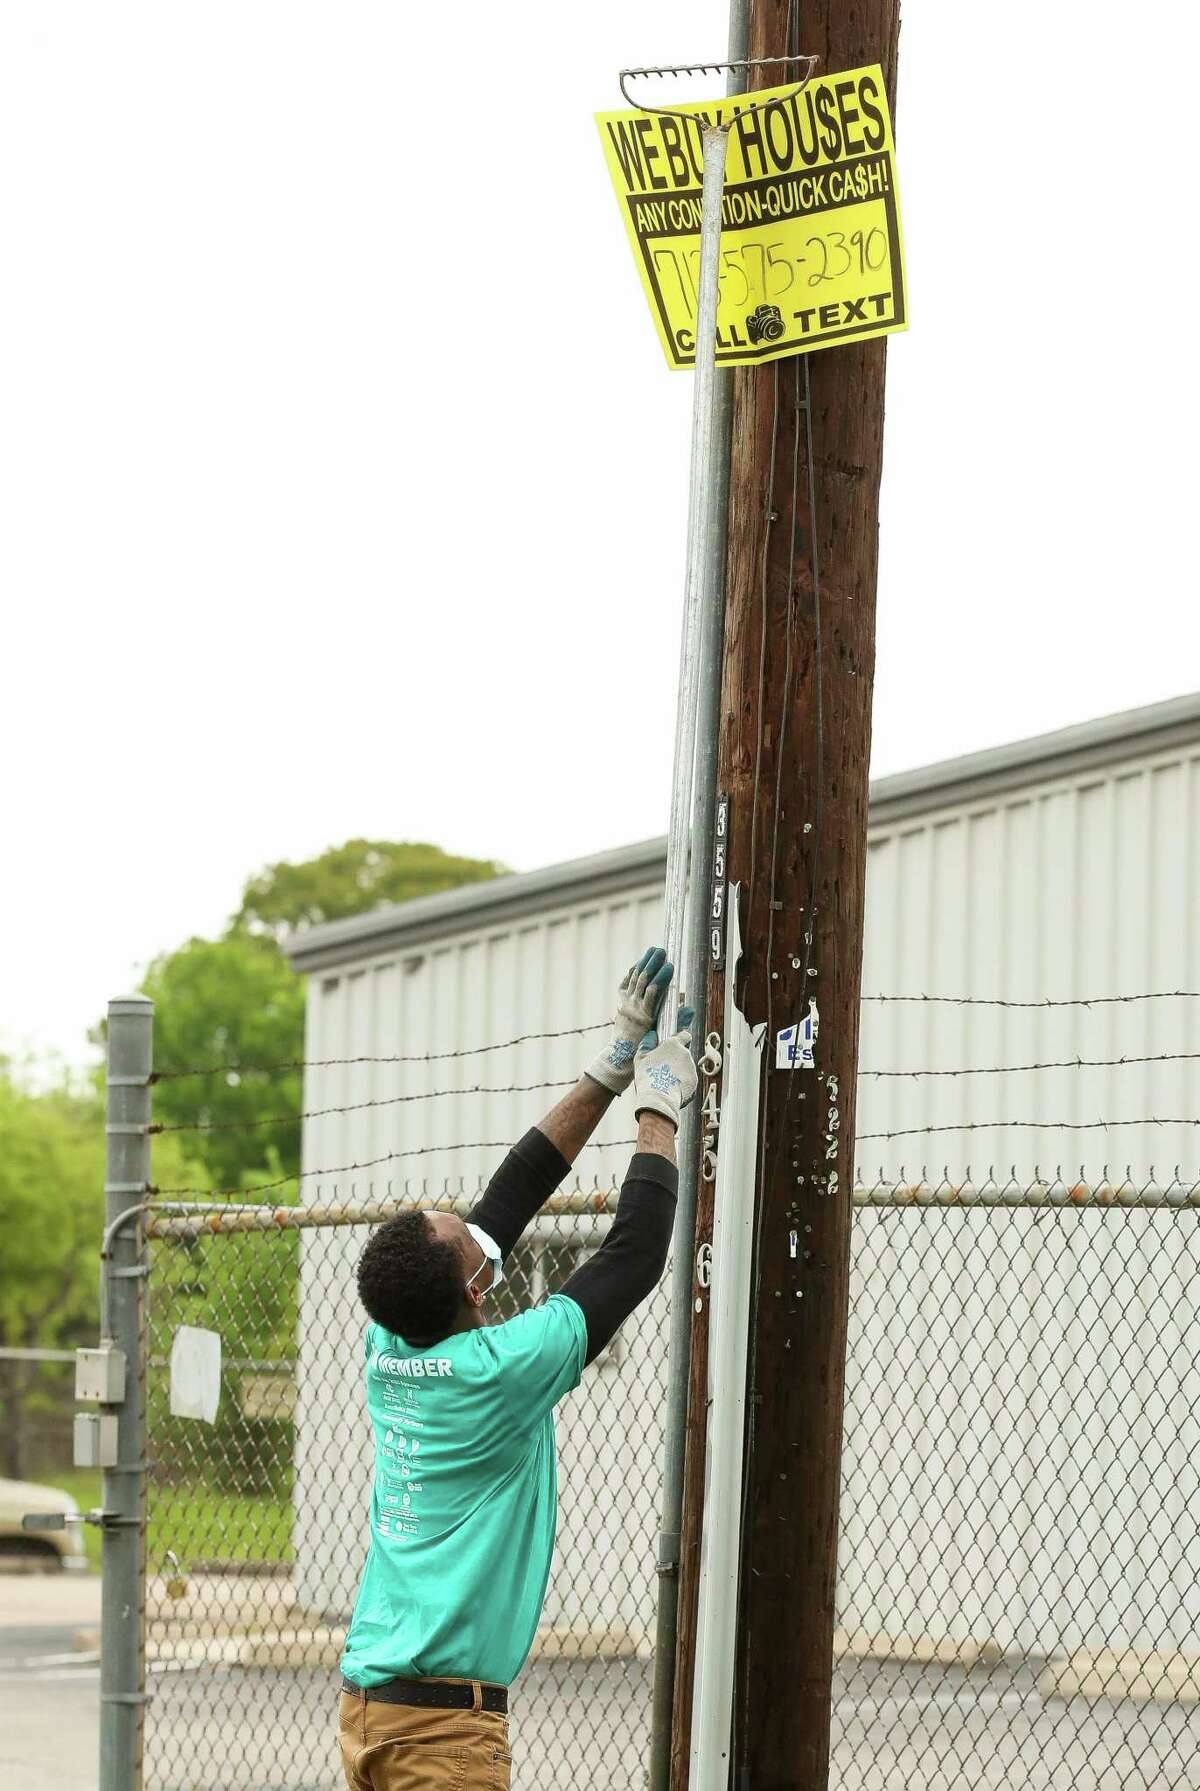 Eddie Dancy - with the District K community cleanup team - takes down a bandit sign from an electrical post on April 10, 2021, in Houston. A bill in Austin would significantly increase the penalties on hanging the signs from $1,000 maximum to up to $5,000 for a second offense and $10,000 for a third and thereafter.